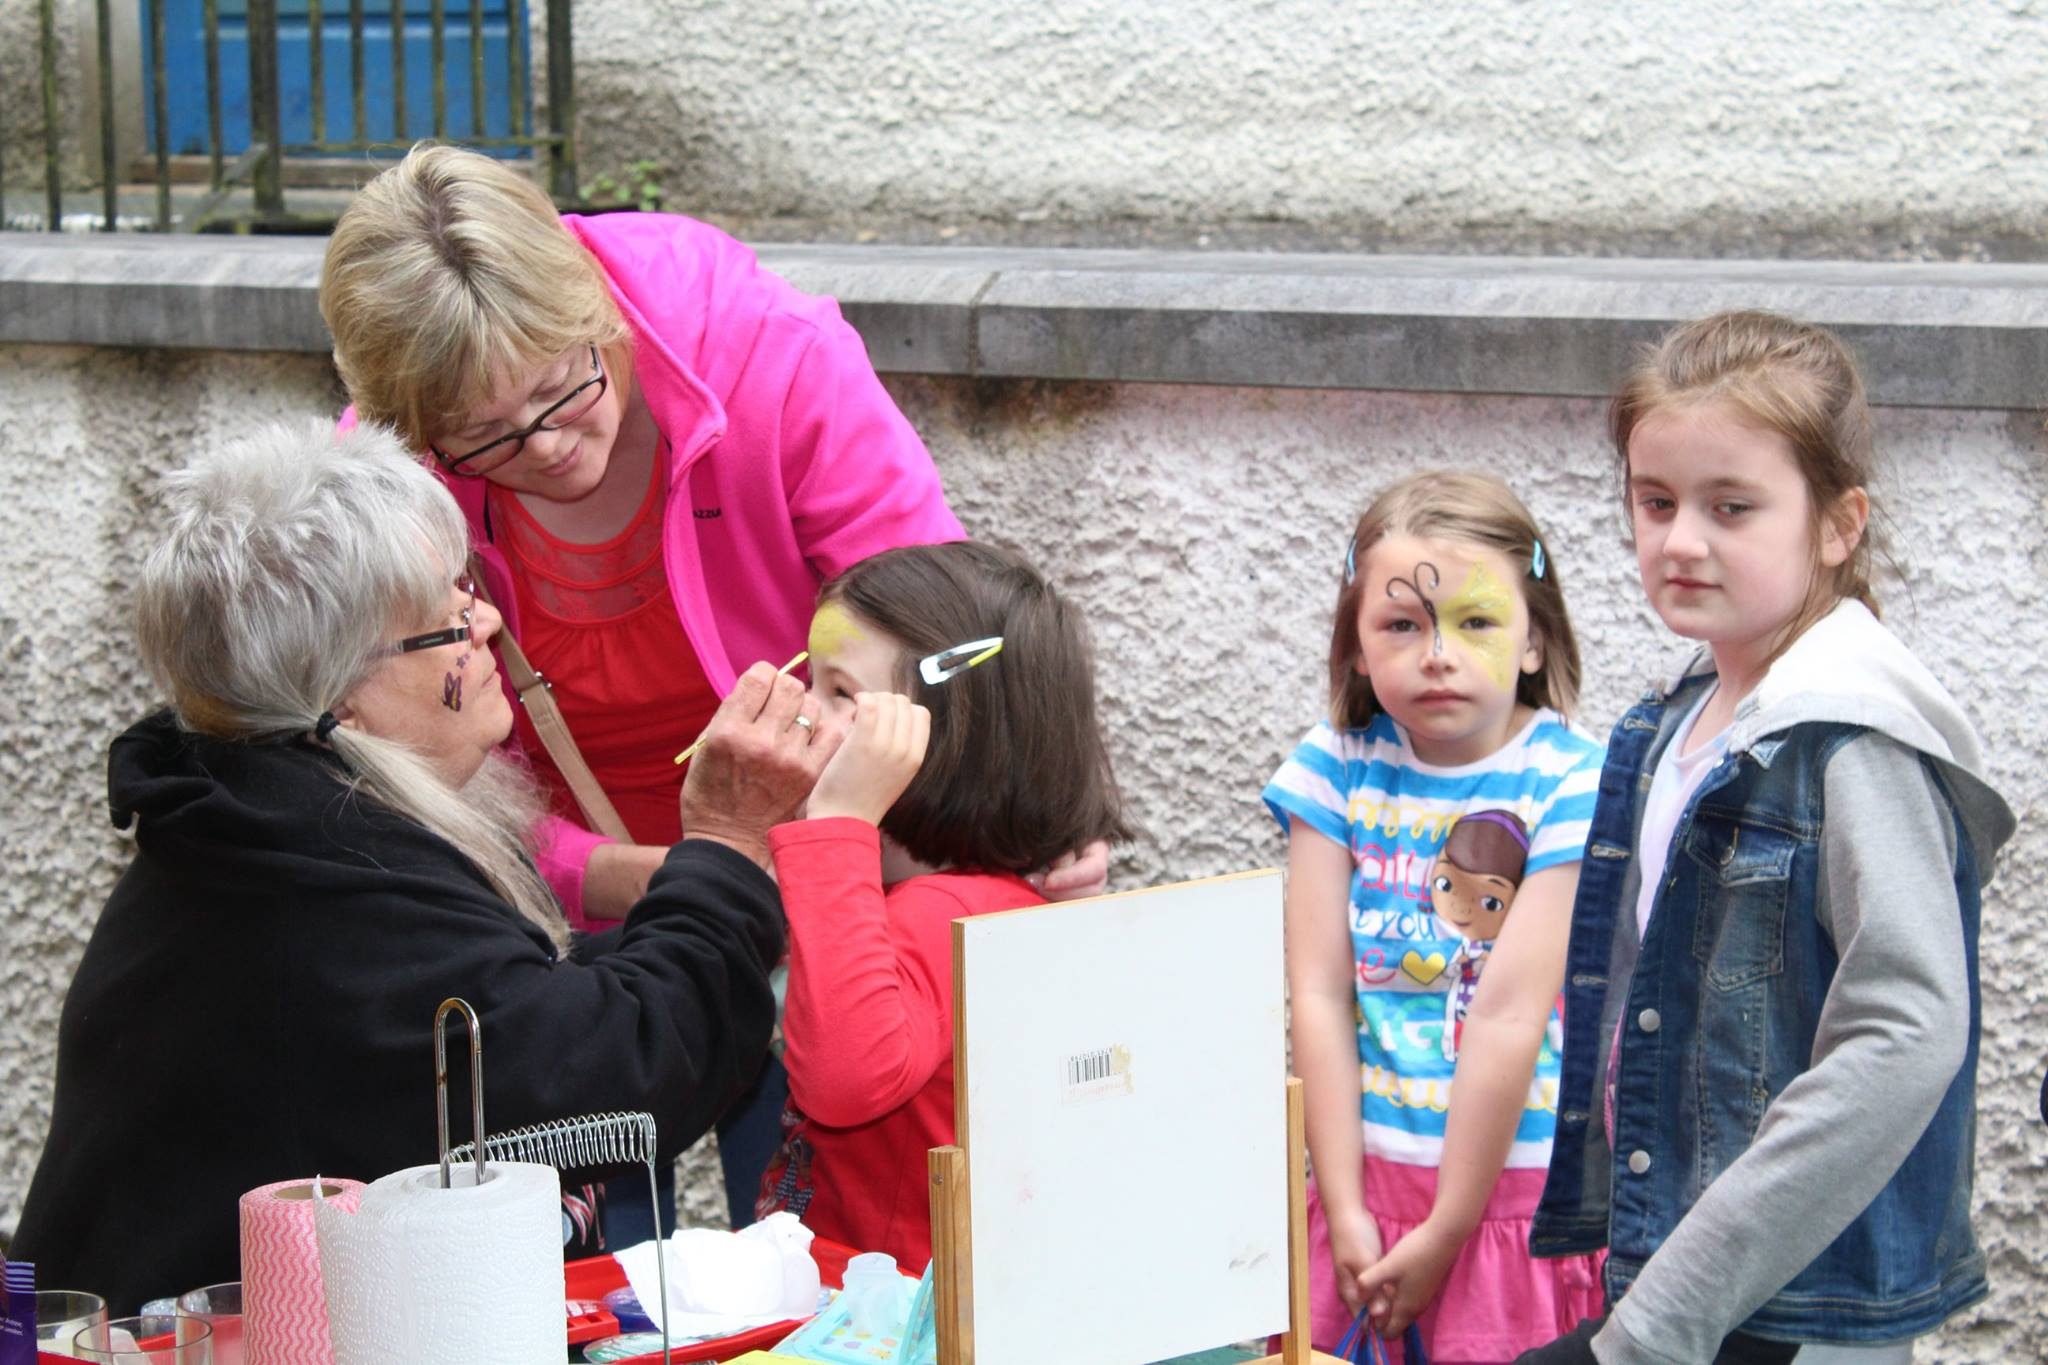 Our resident facepainter, Eva hard at work, Boyle Courtyard Market, County Roscommon.